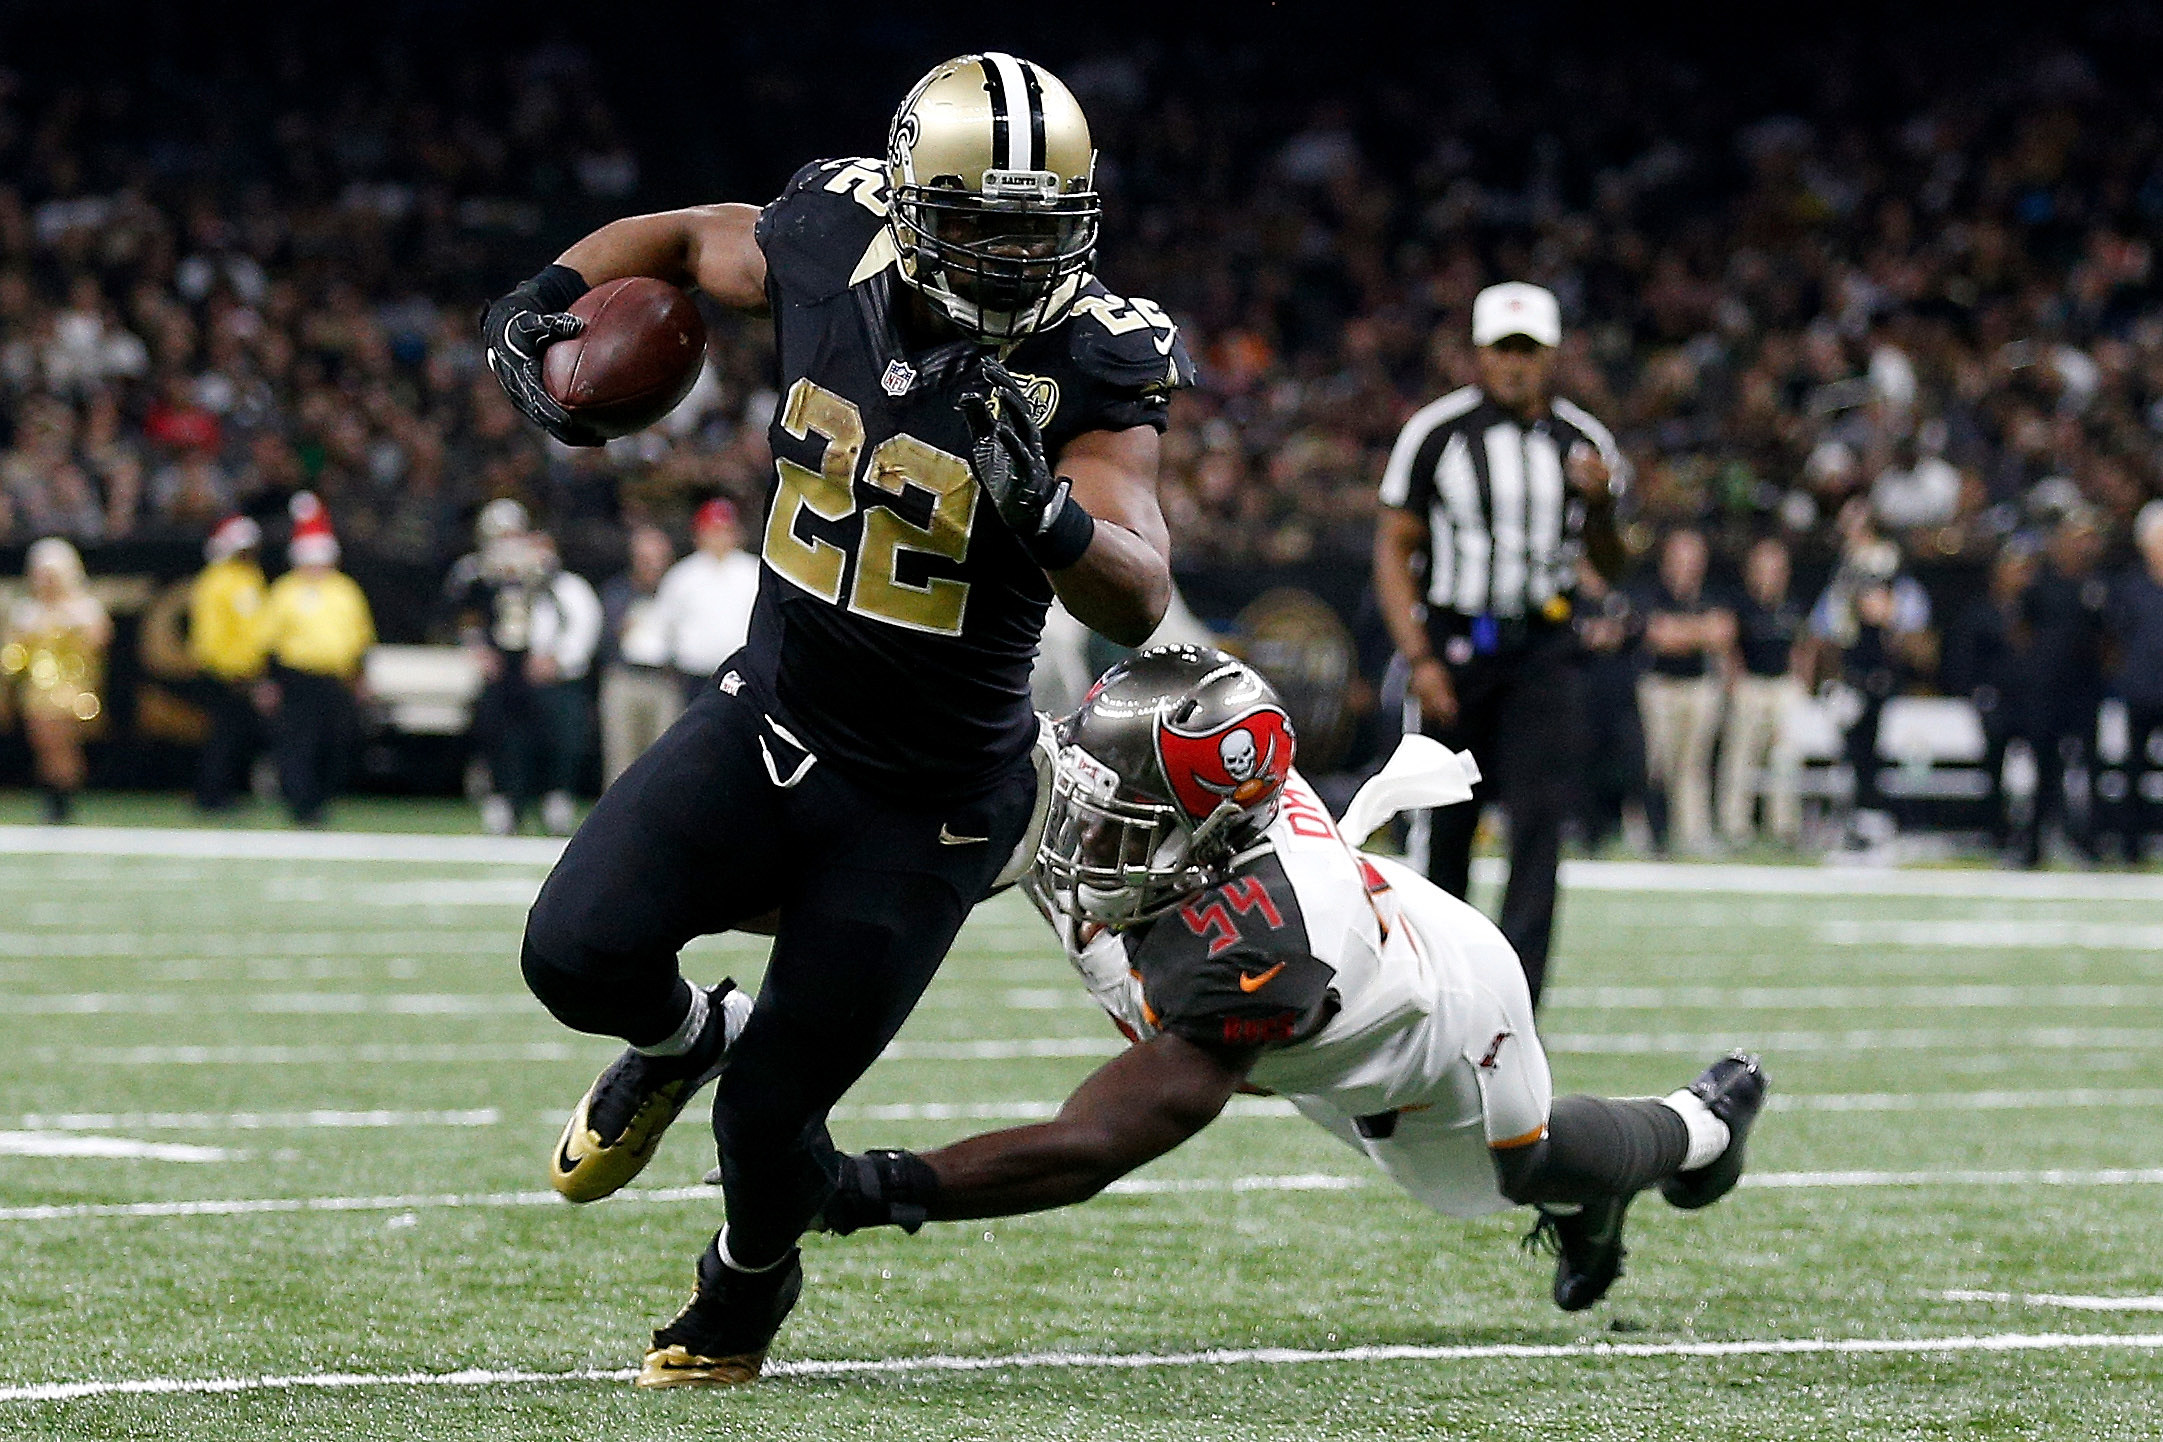 Max Unger: Saints C Unger (foot) may open year on PUP